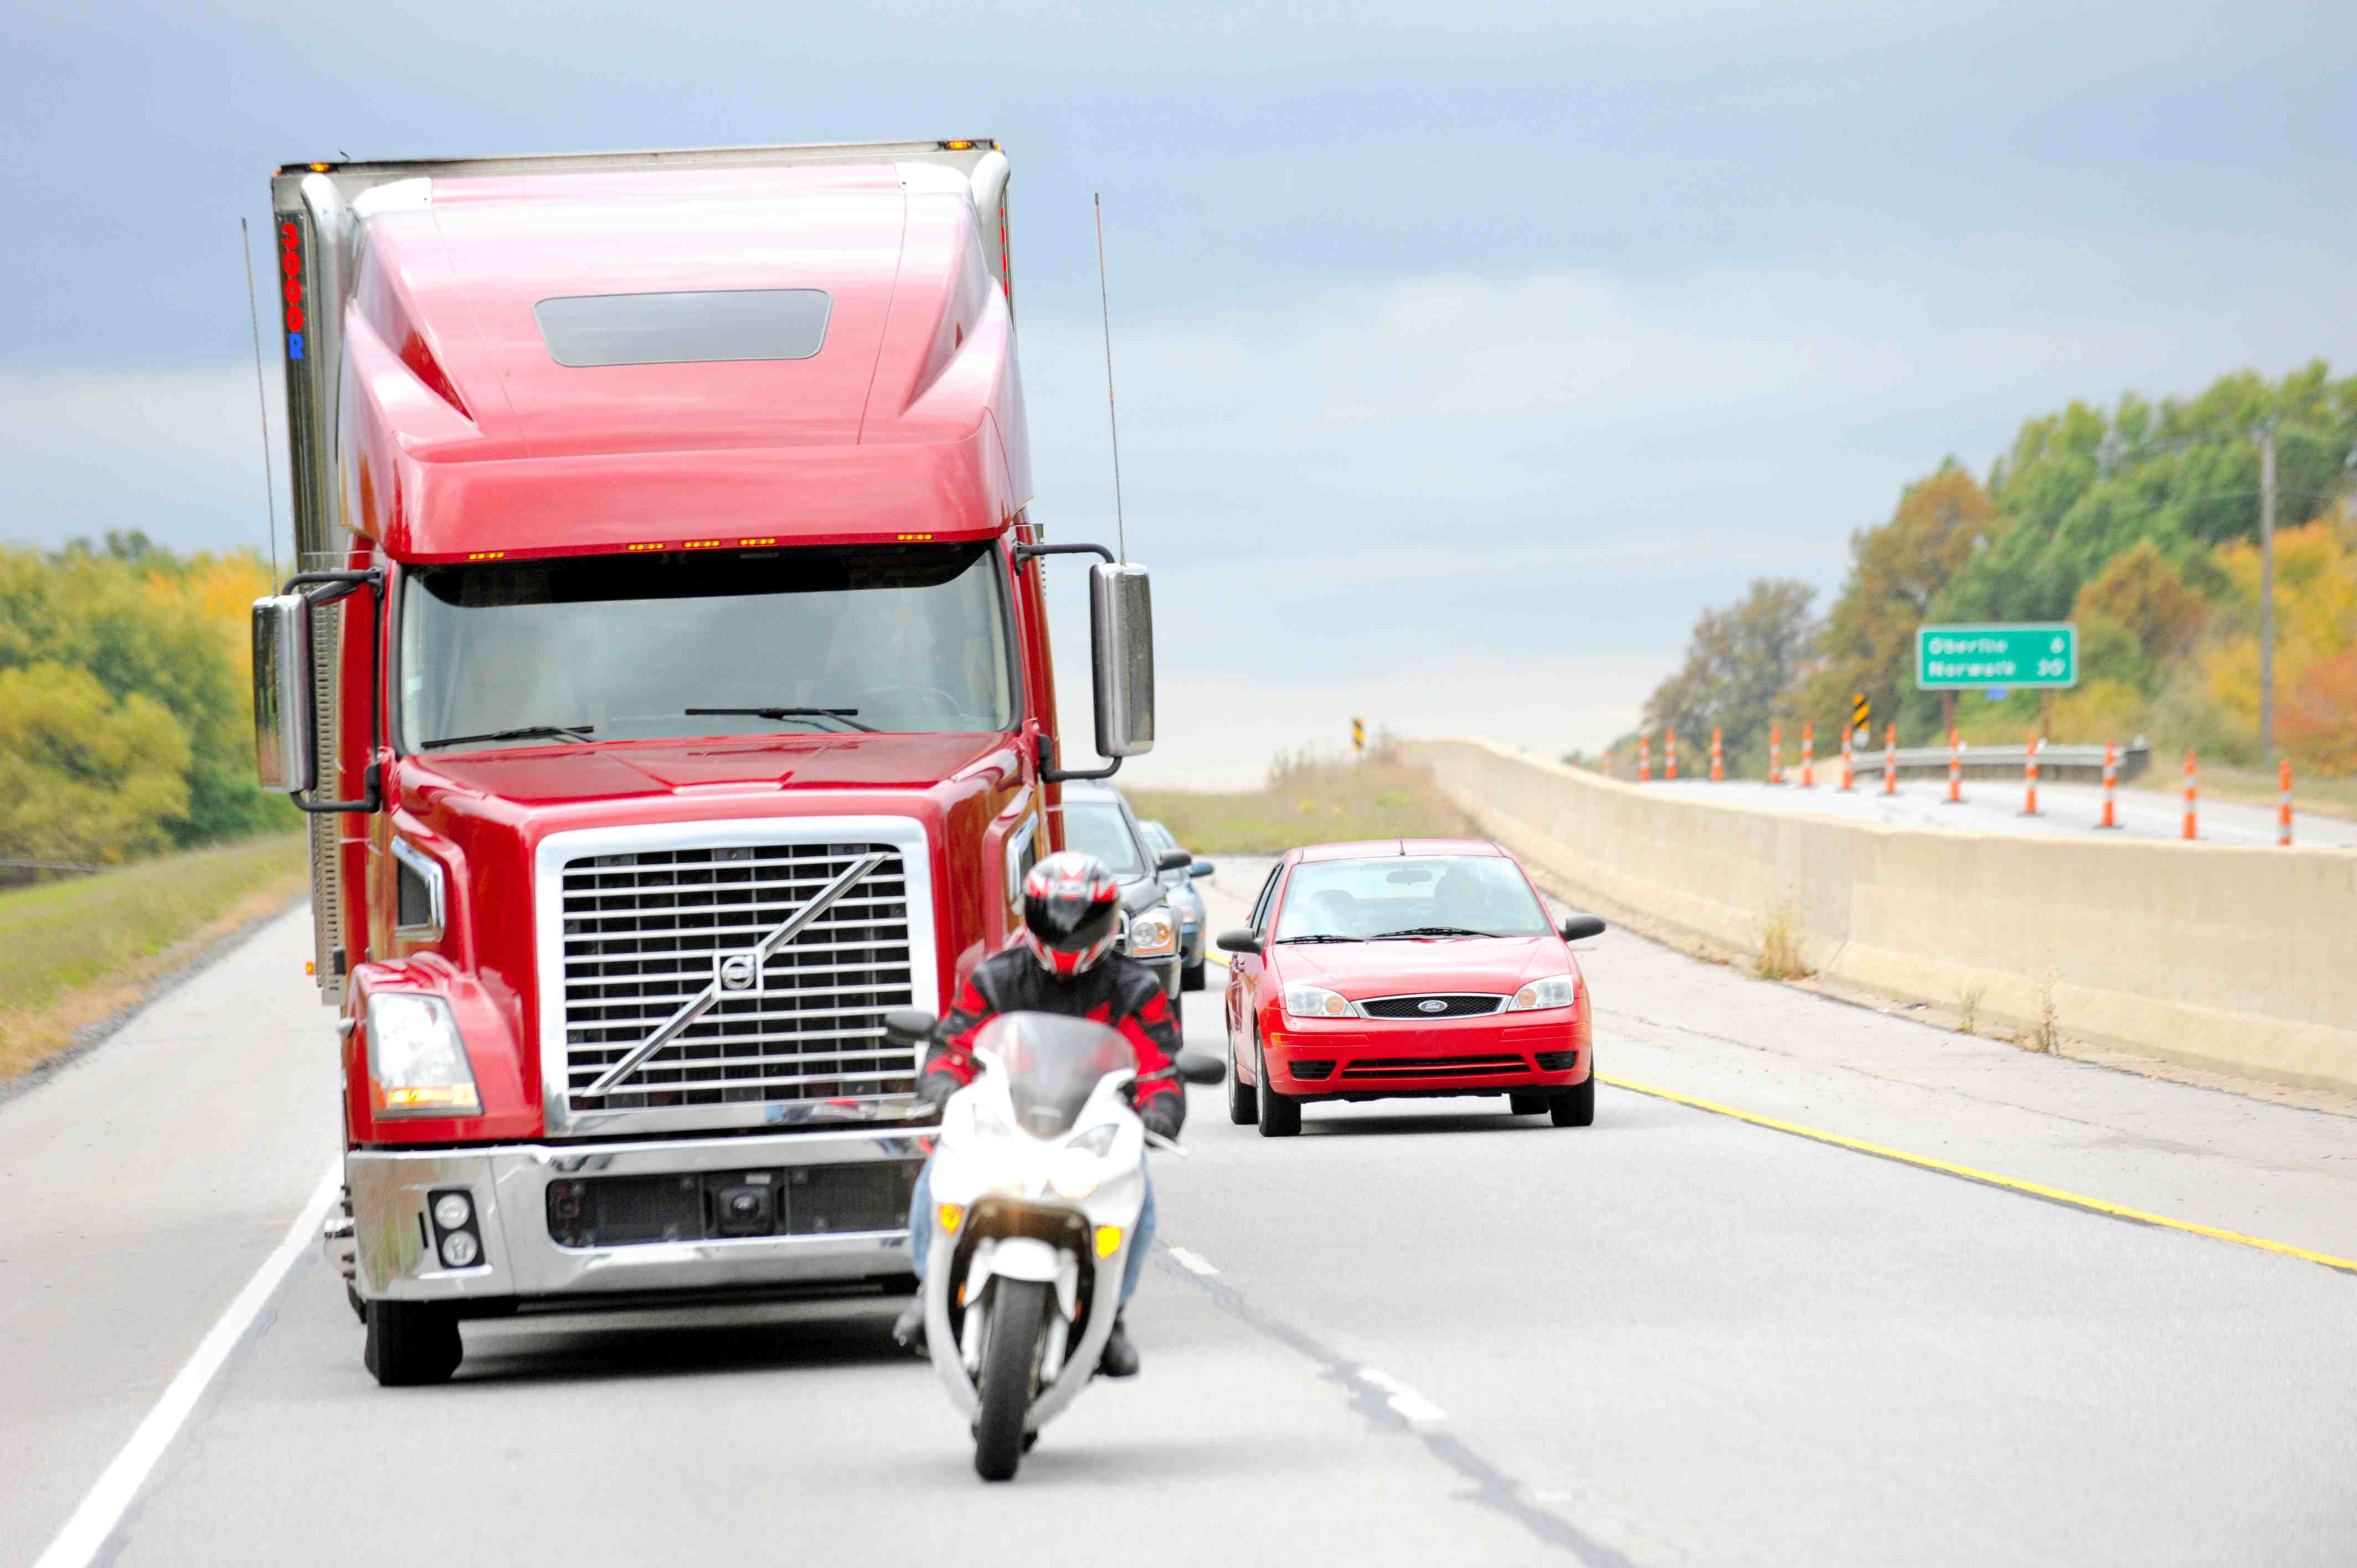 Bendix offers collision mitigation technology